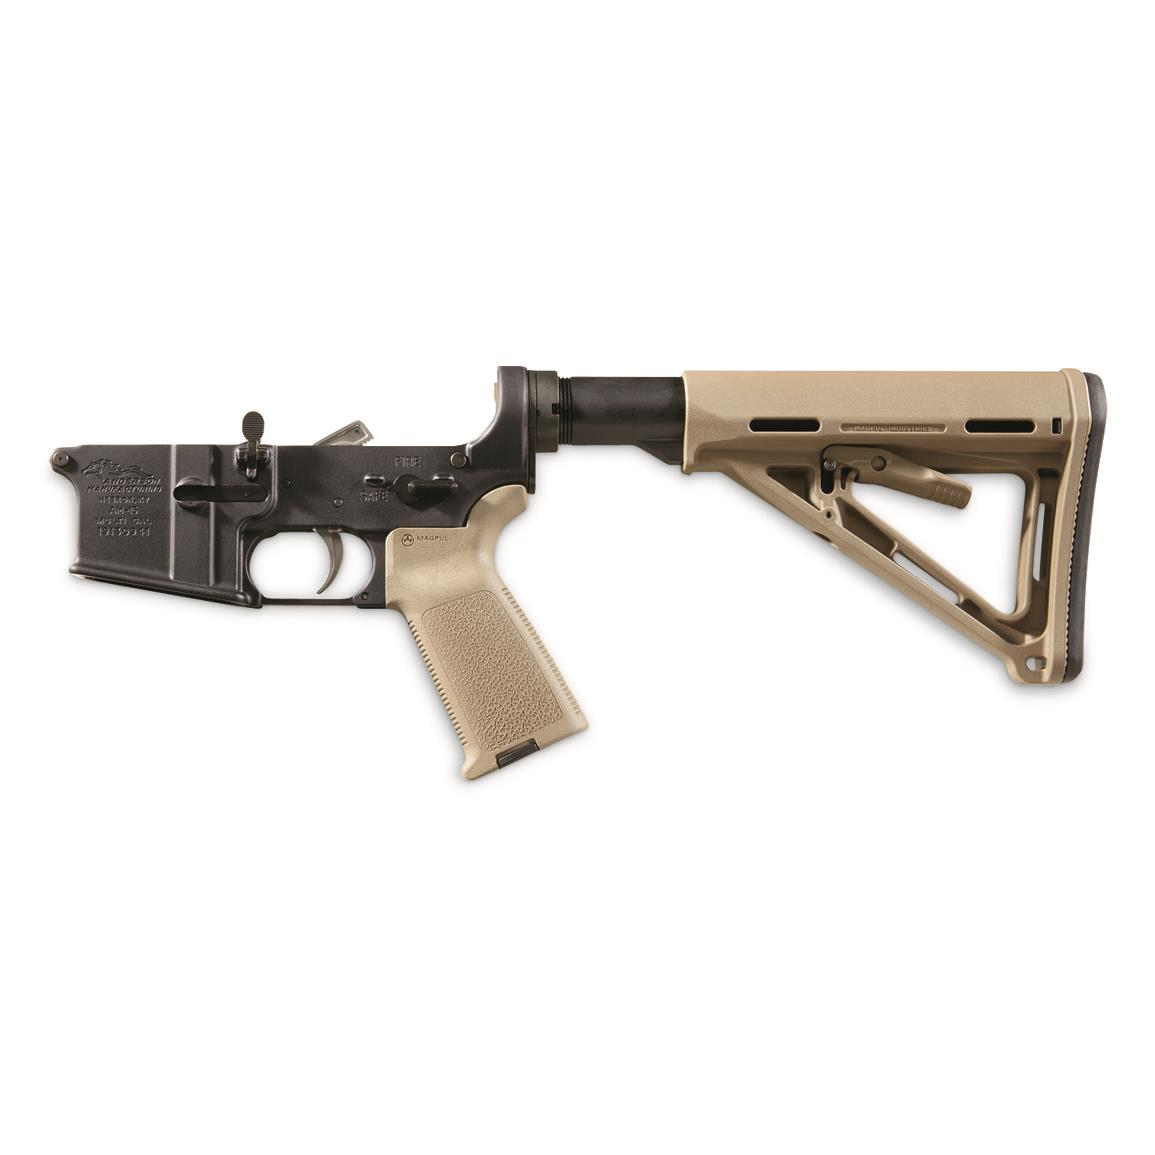 Anderson Complete Assembled Lower, Multi-Cal, Magpul Stock and Grip, Tan